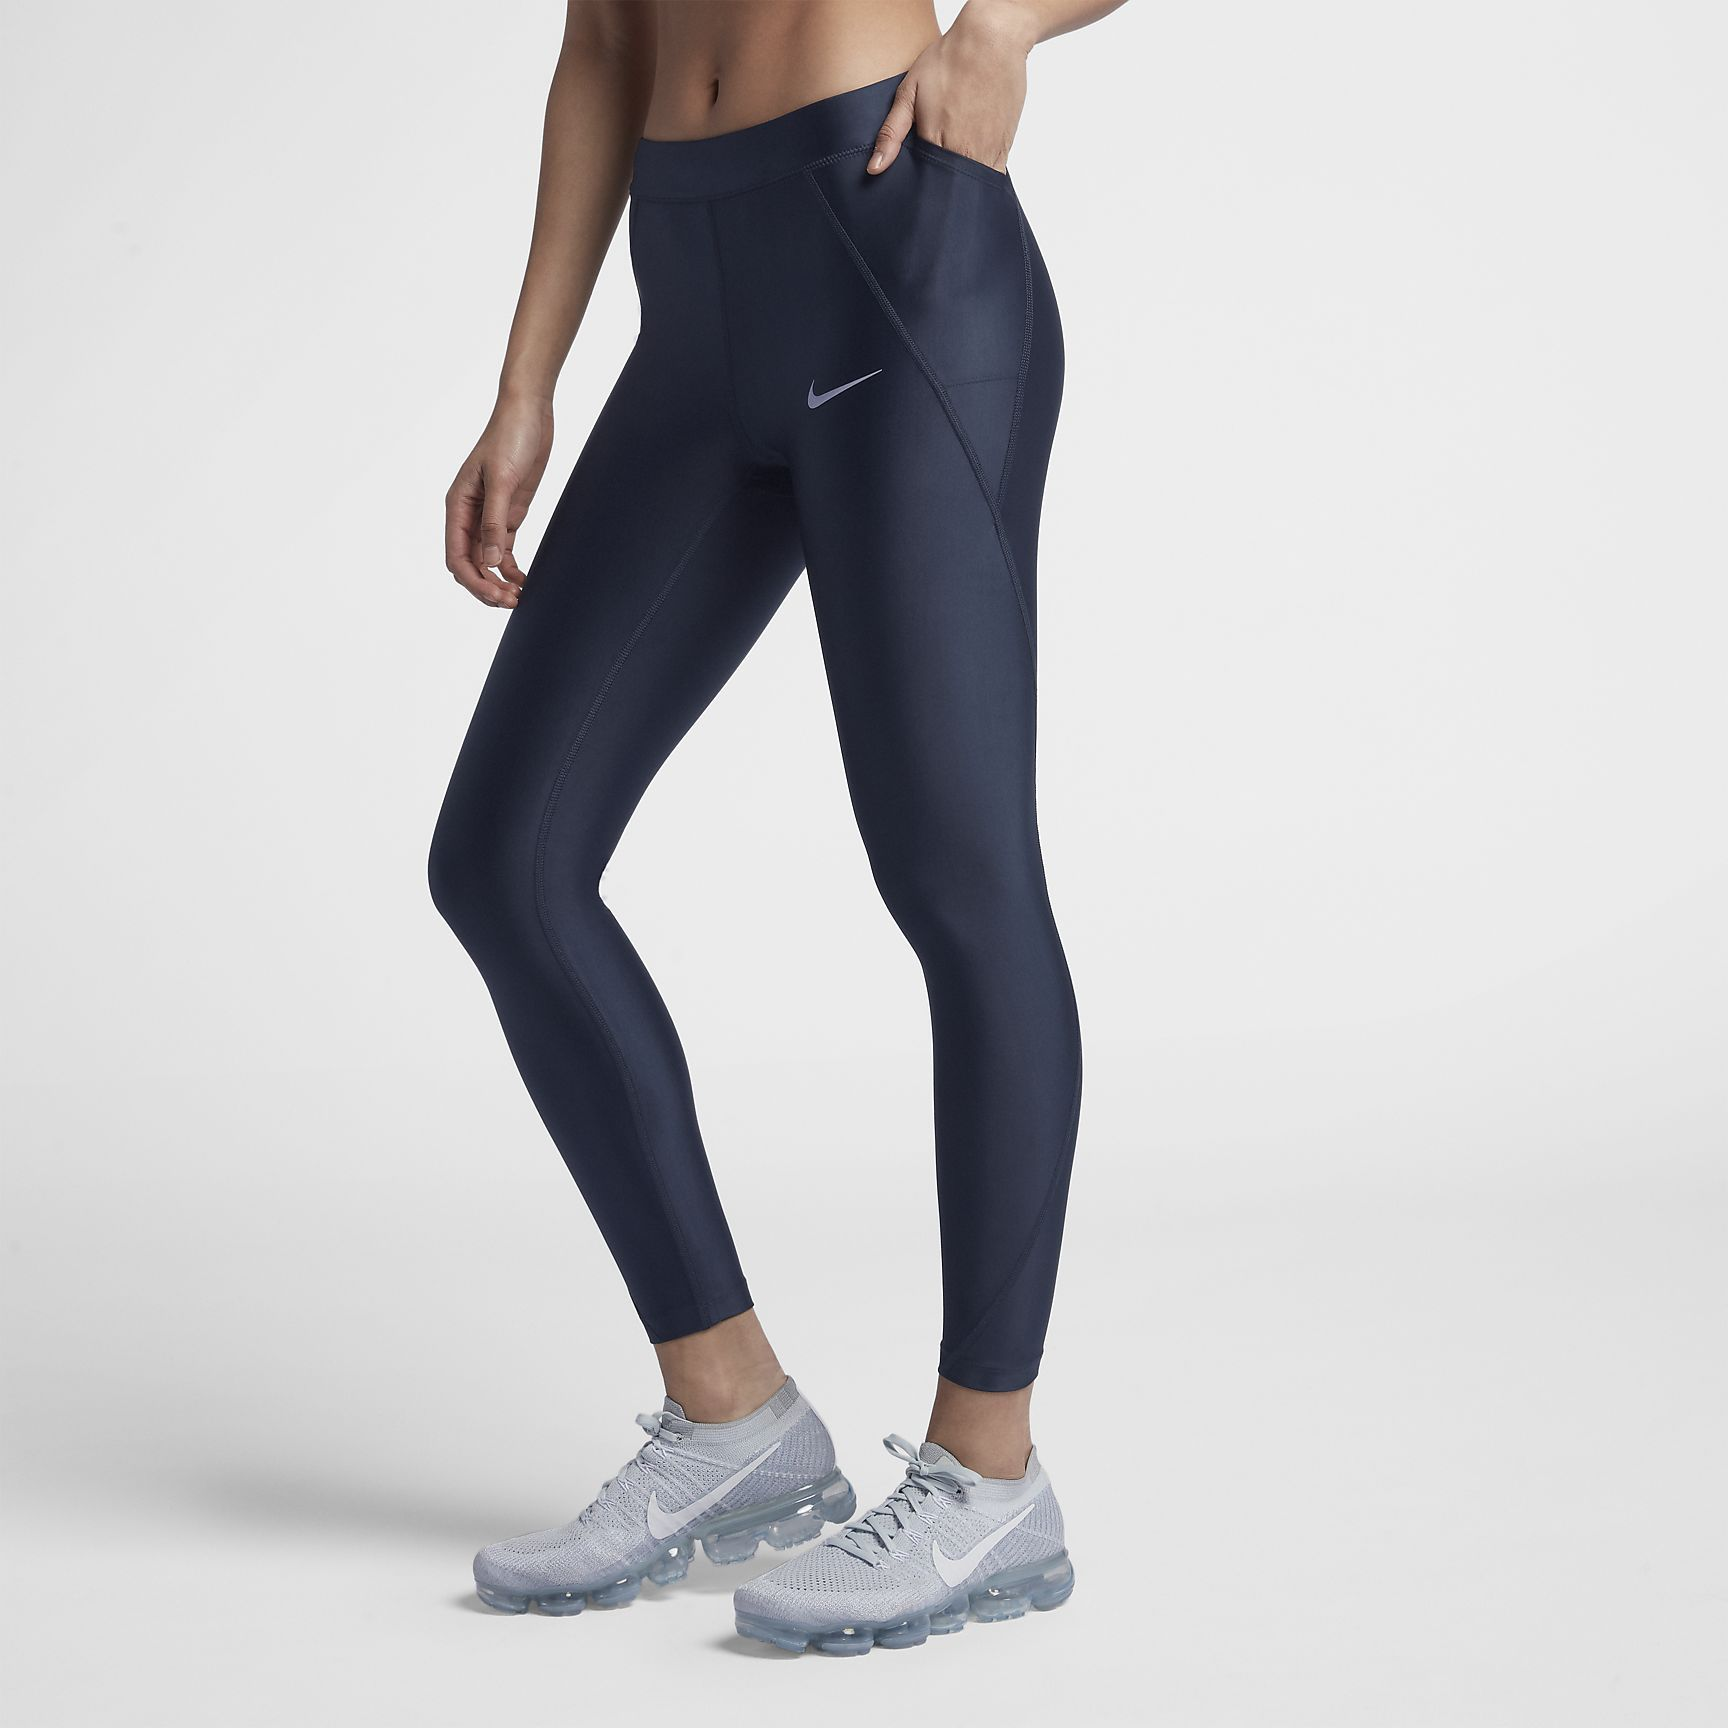 2bc77b729a655 Speed Women's Mid-Rise 7/8 Running Tights | KT'S WISH LIST | Running ...